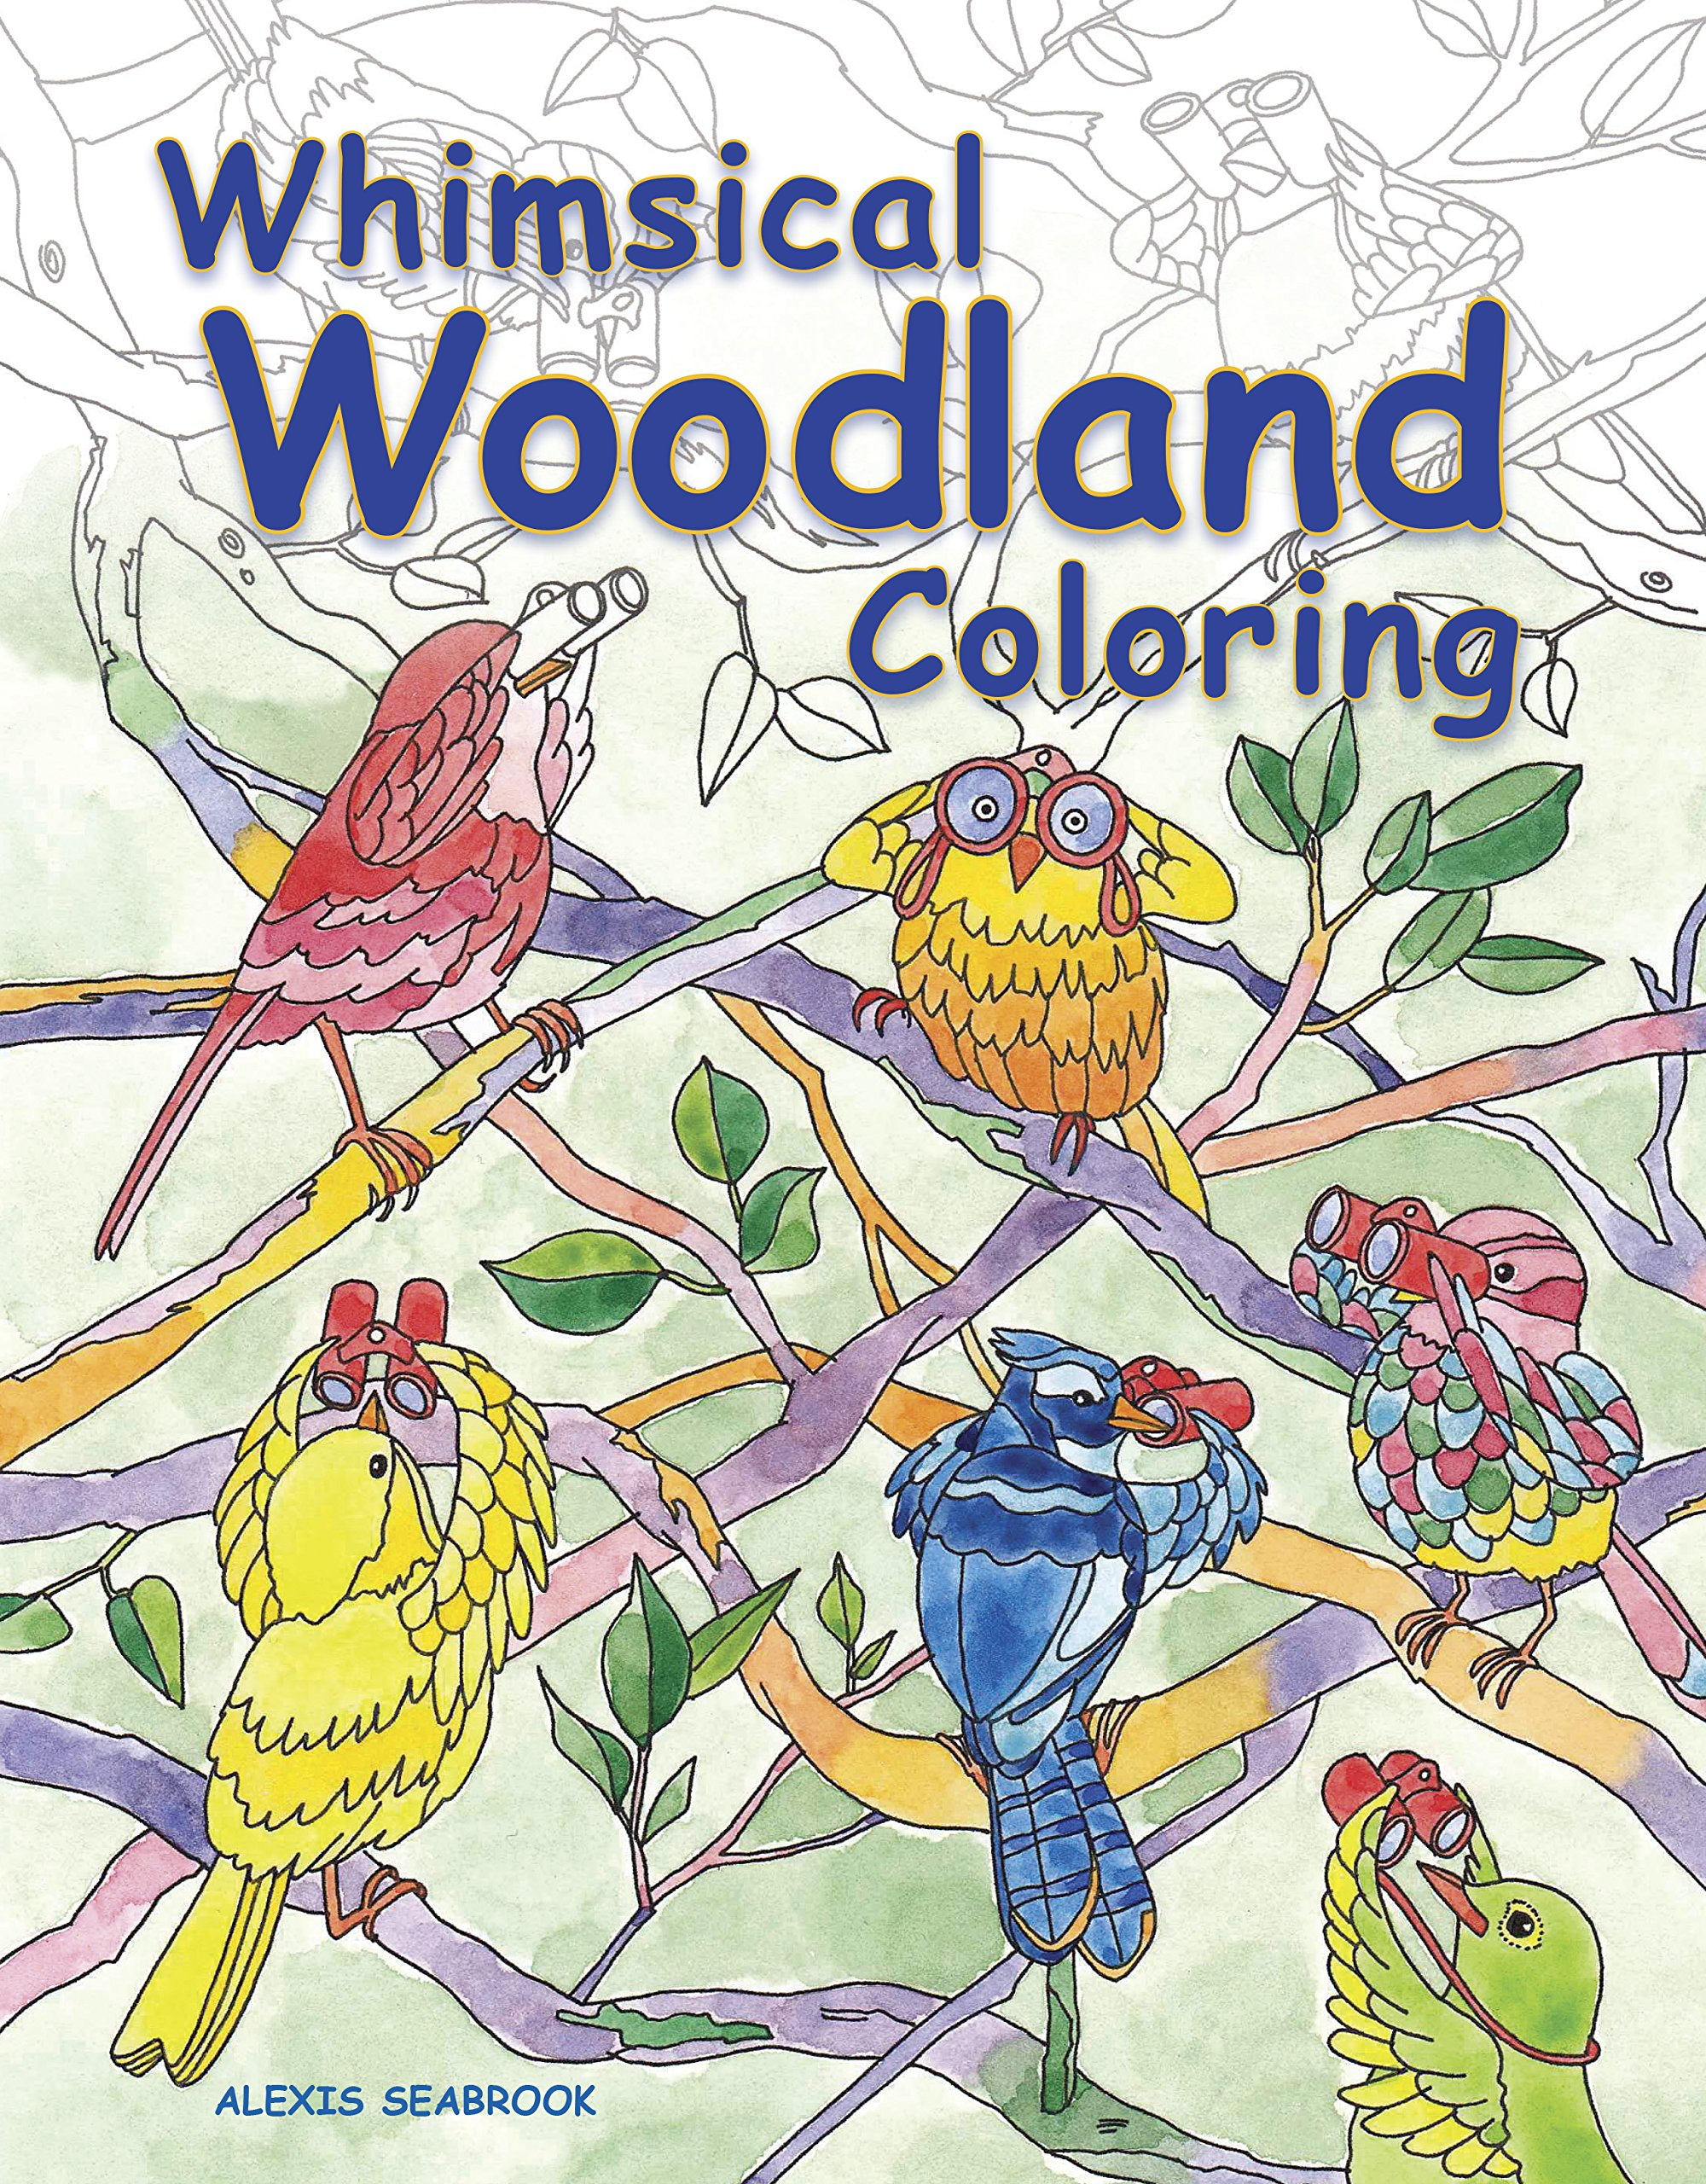 whimsical-woodland-coloring